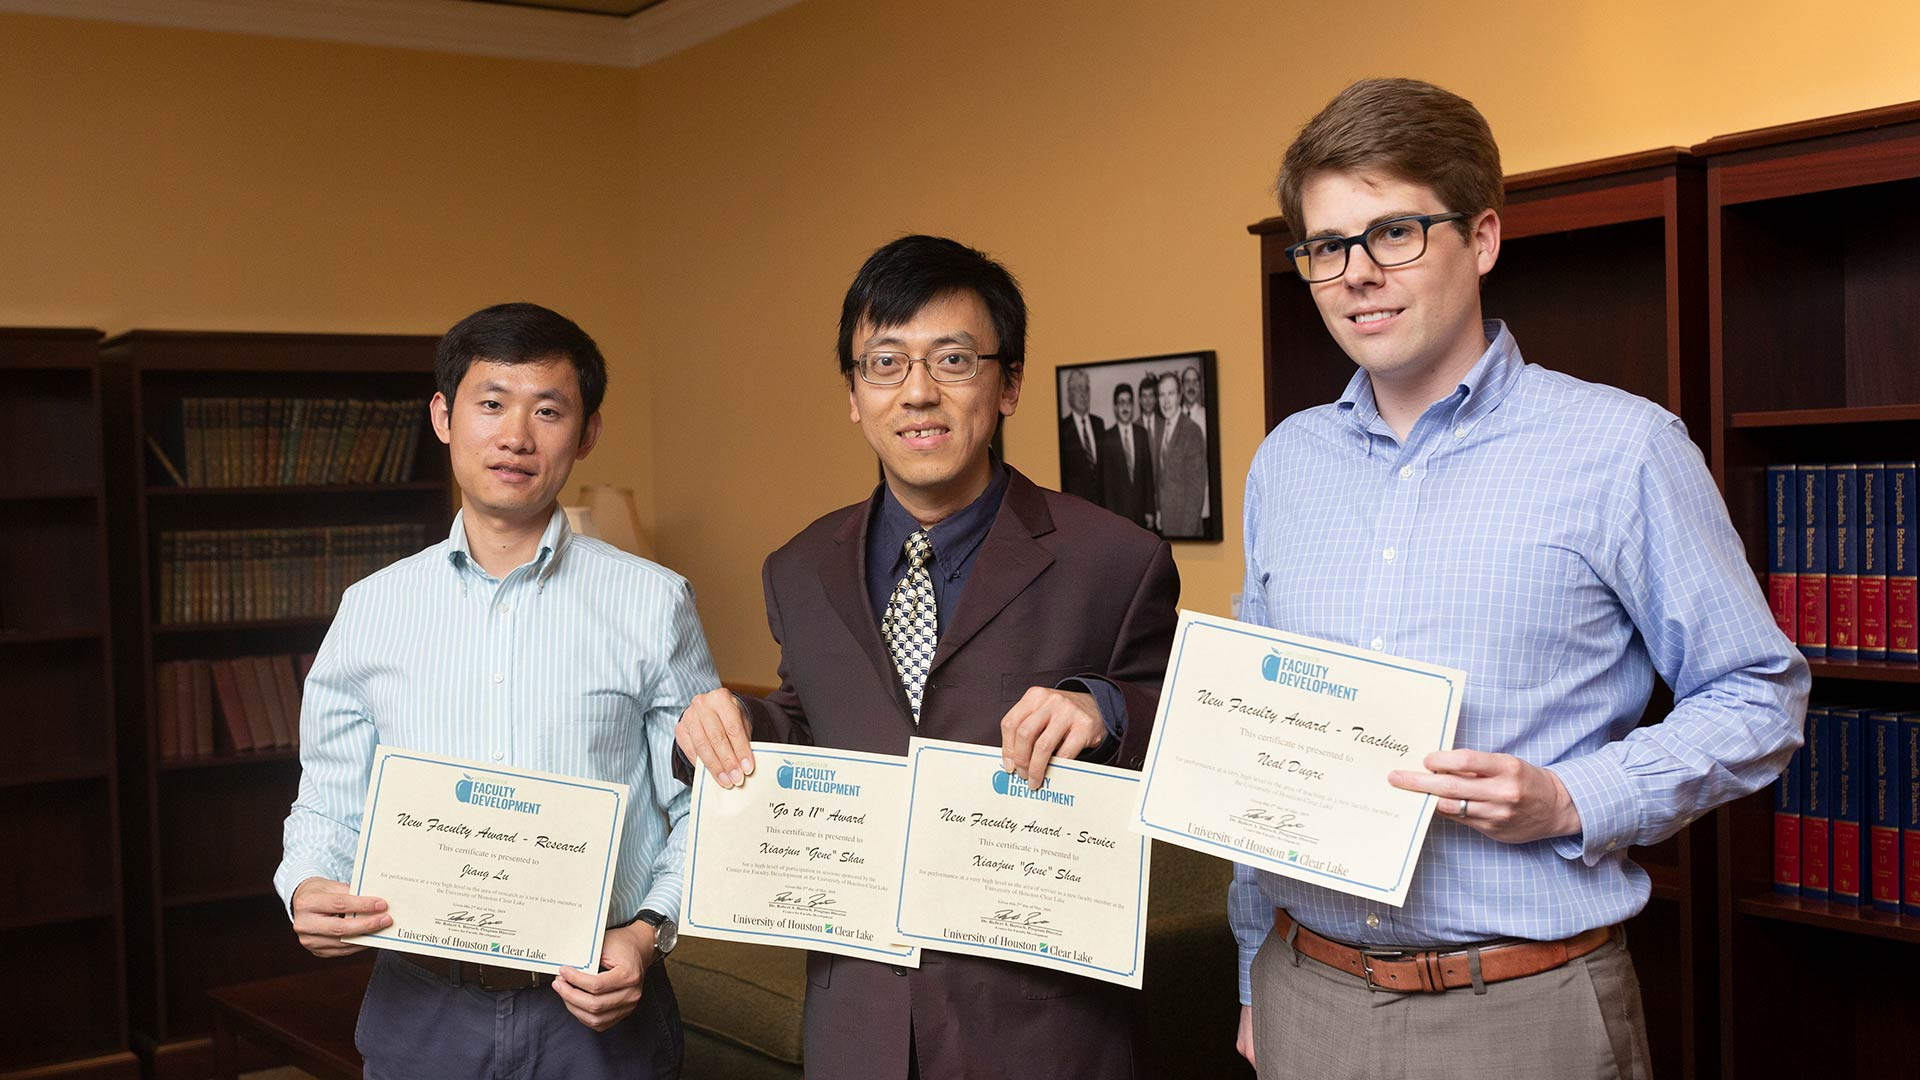 Three faculty members holding certificates